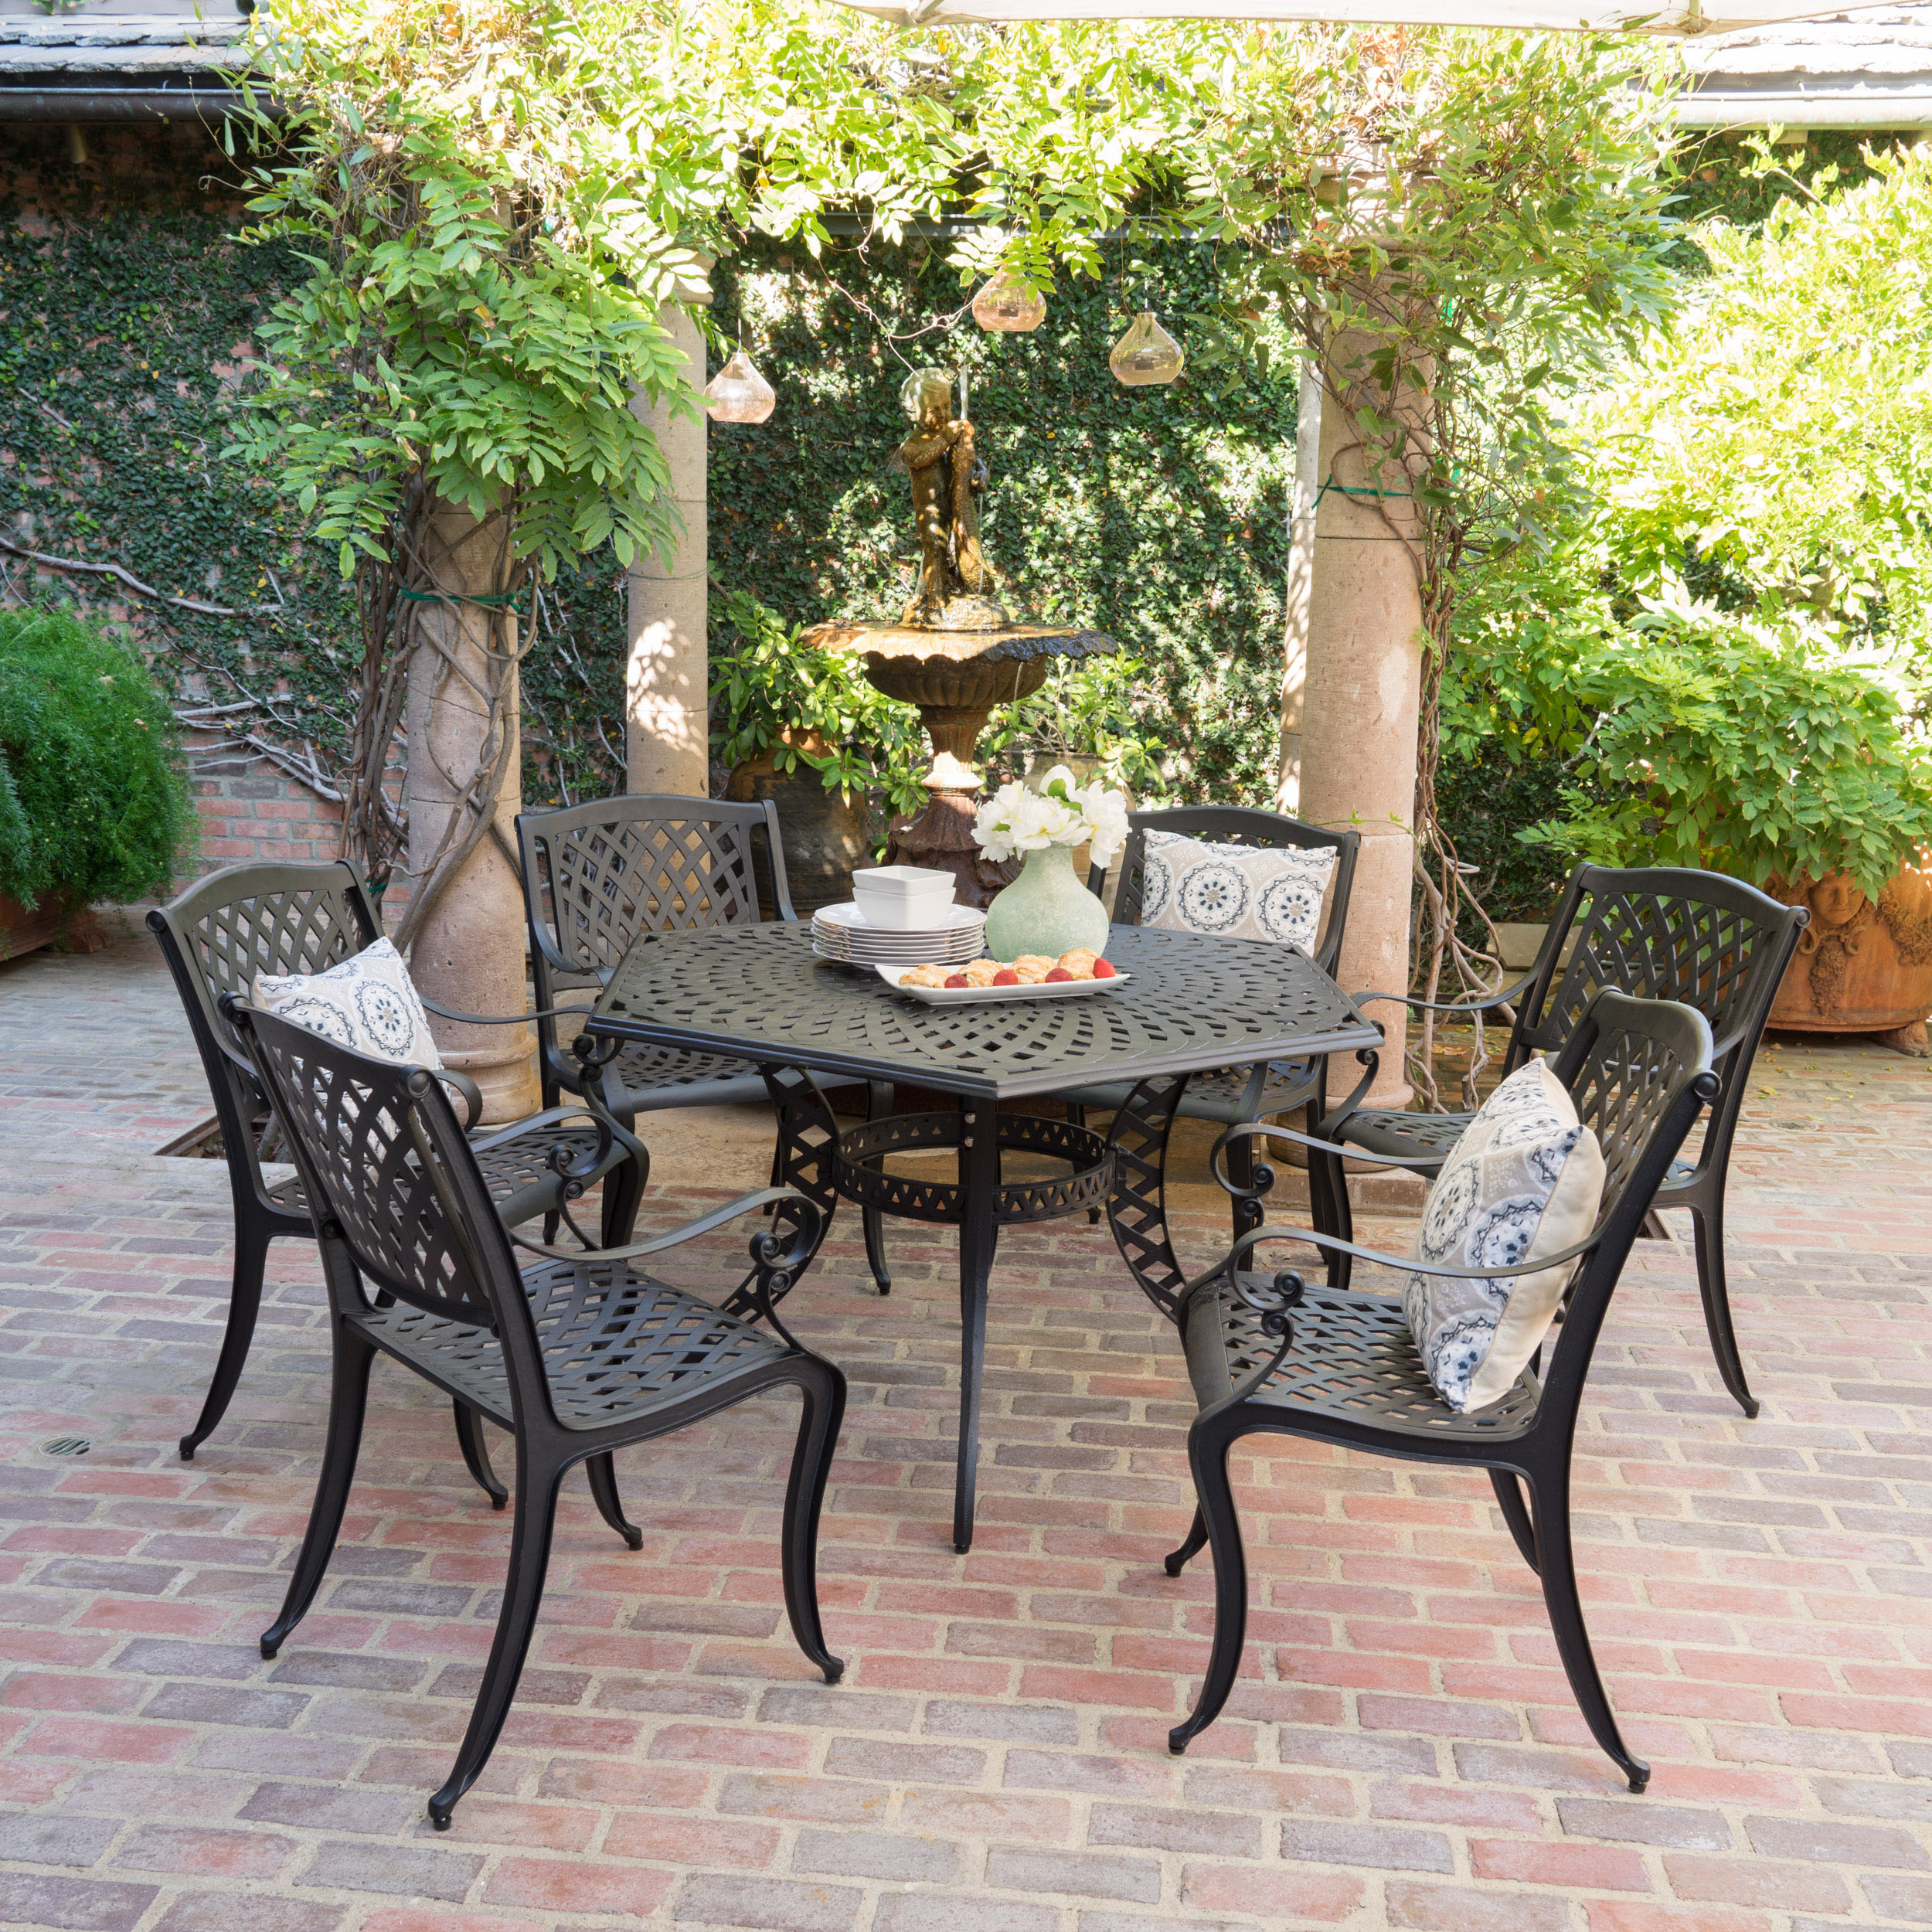 Dara Hansworth 7-piece Cast Alumininum Outdoor Dining Set, Black Sand